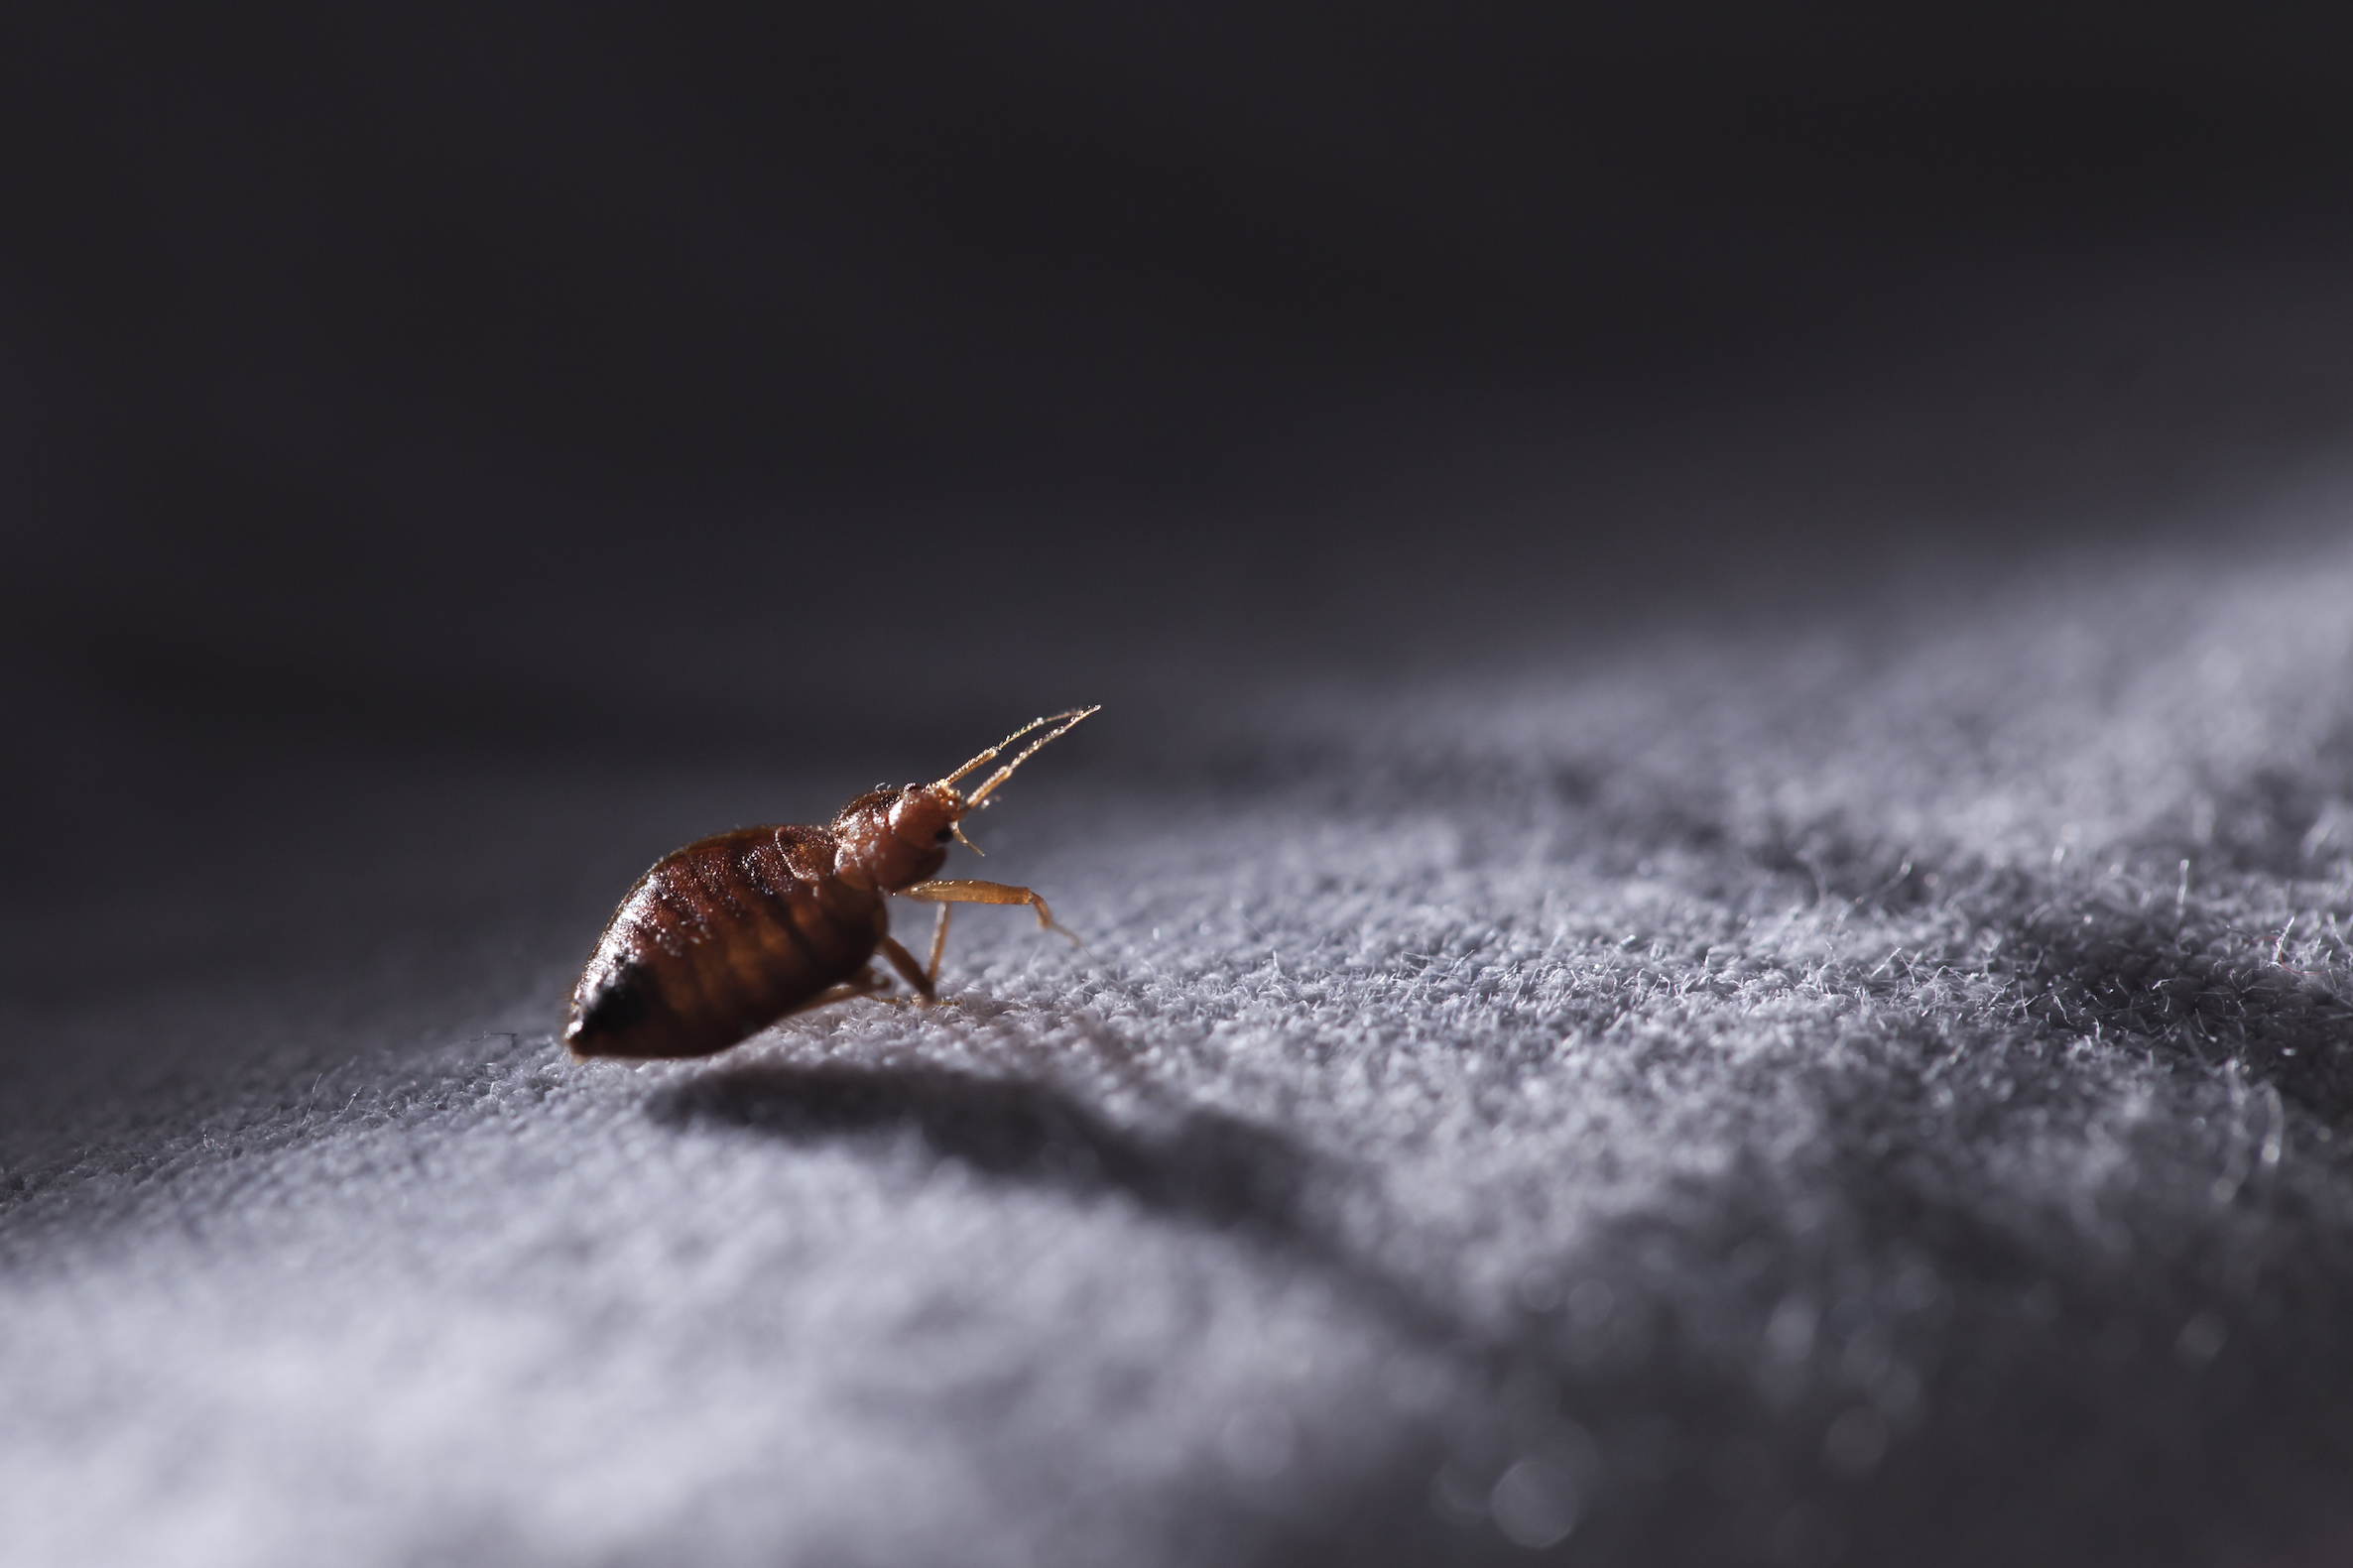 Most U.S. travelers can't identify bed bugs but they hate them all the same, according to a new study from the University of Kentucky.